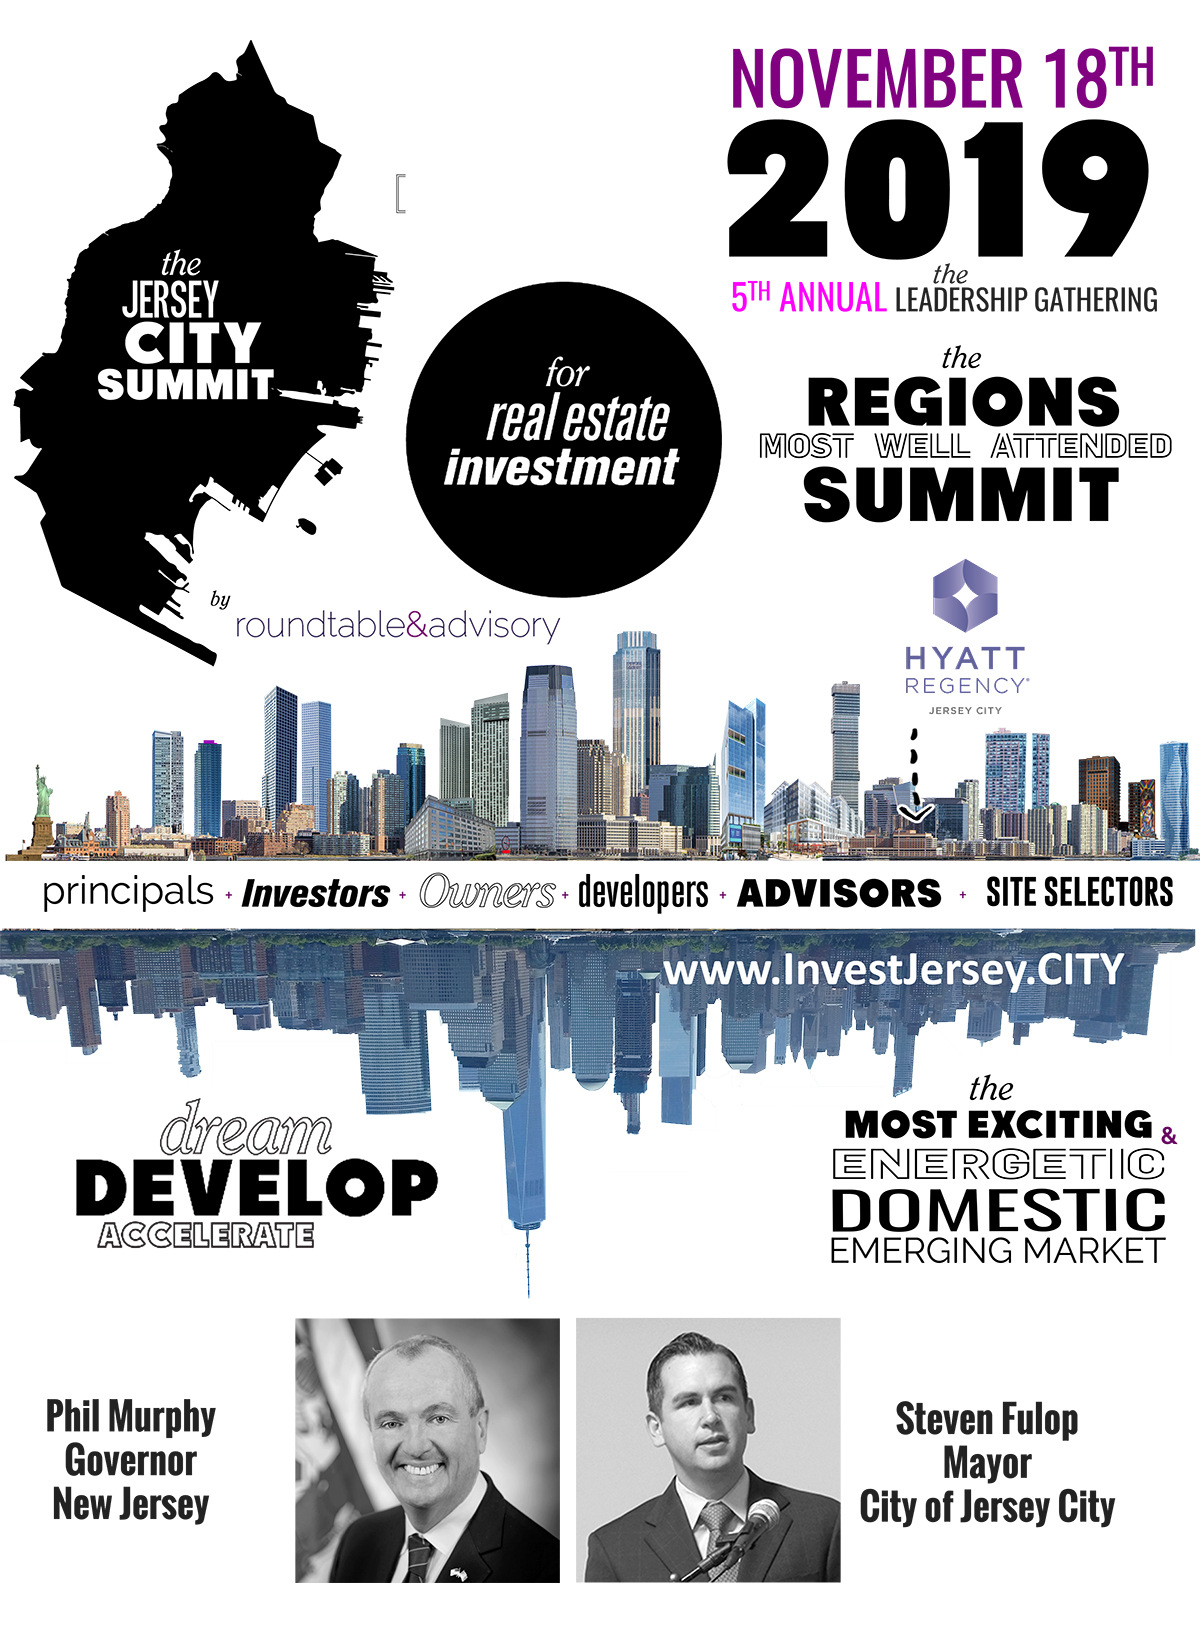 Nov 18, The Jersey City Summit